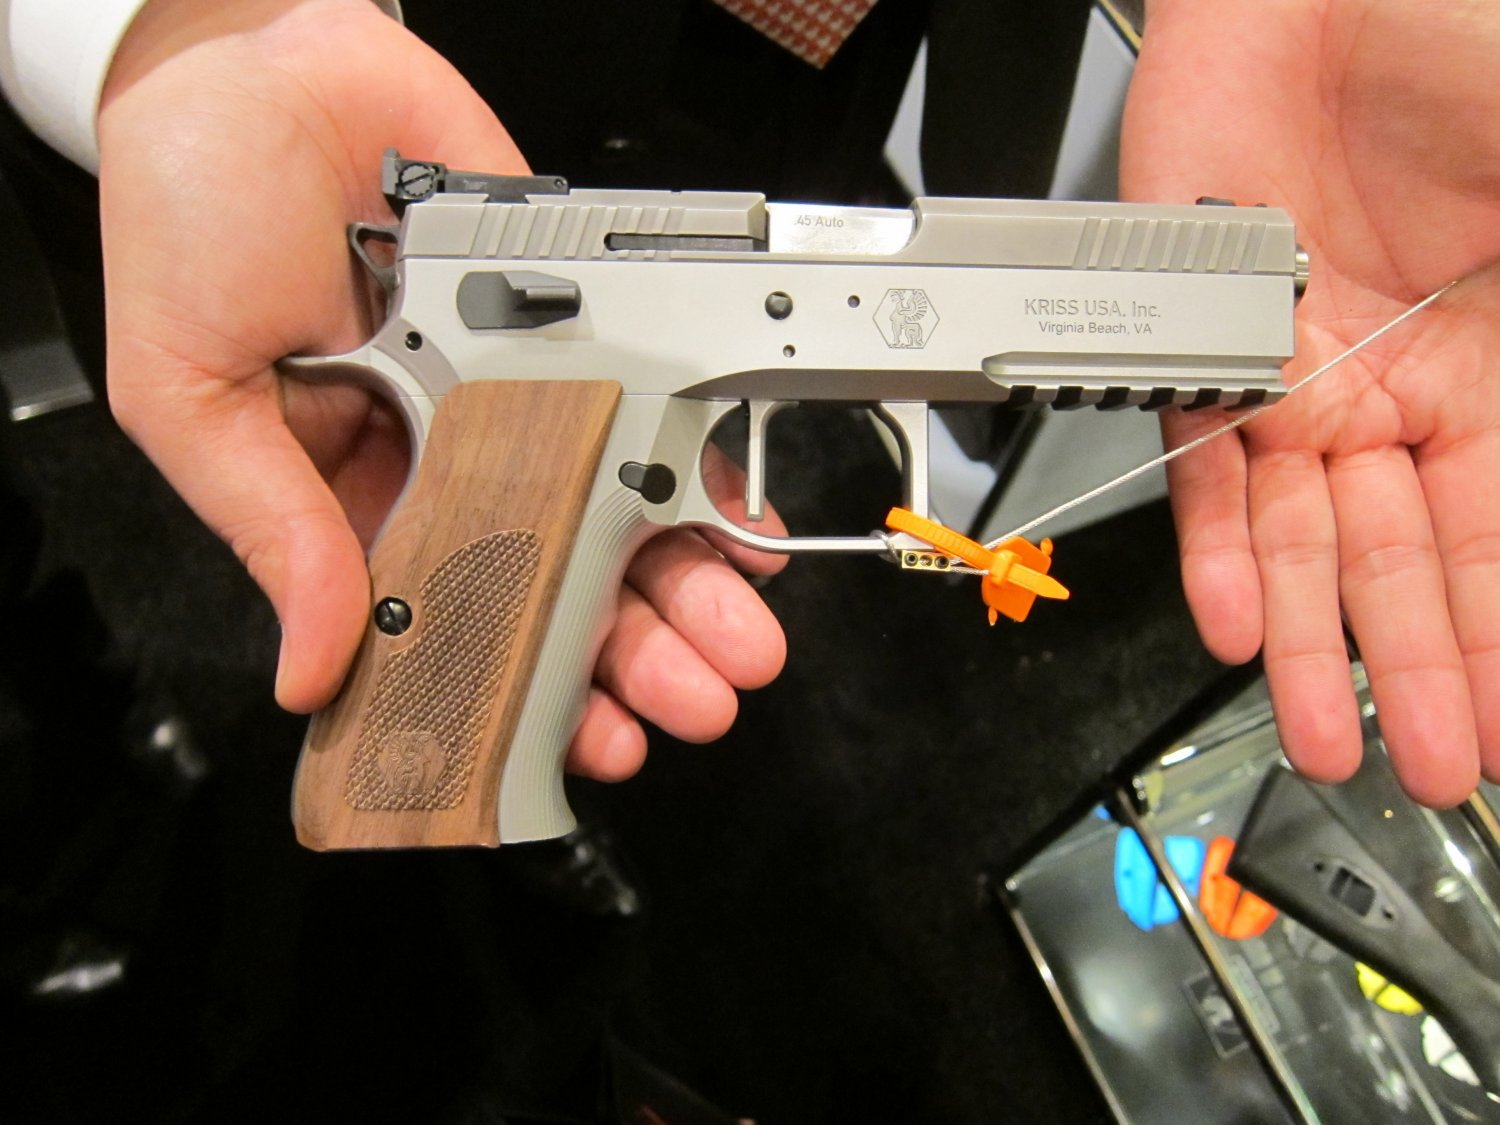 KRISS Sphinx Tactical Pistols 10 <!  :en  >KRISS Sphinx Tactical Pistols and DEFIANCE Silencer/Sound Suppressors at SHOT Show 2011: High End Swiss Tactical Pistols for Military Special Operations, Law Enforcement SWAT Ops, and Competitive Shooting<!  :  >